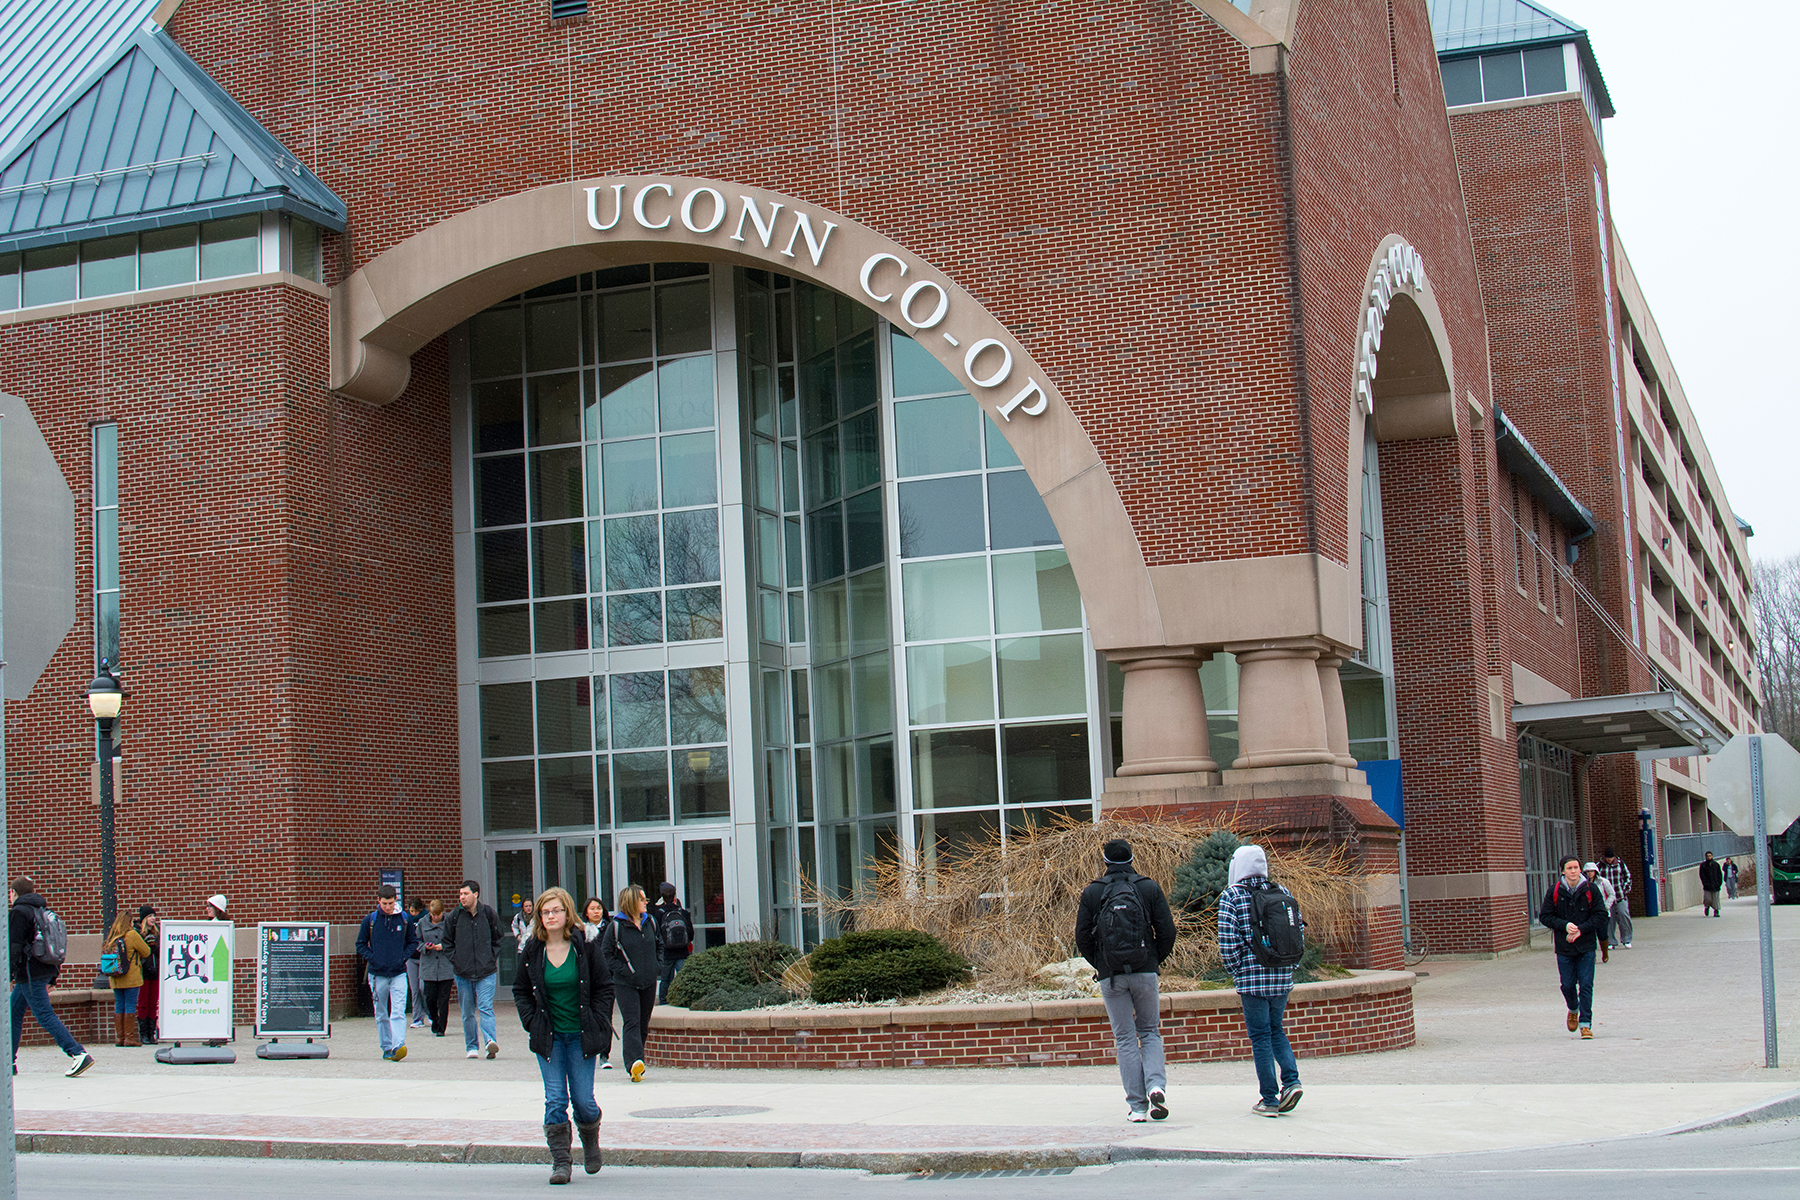 In this file photo, the UConn Co-op is pictured in Storrs, Connecticut.Book sales at the UConn Co-op have fallen nearly 30 percent from their peak five years ago as students increasingly search to buy textbooks from online retailers. (File Photo/The Daily Campus)